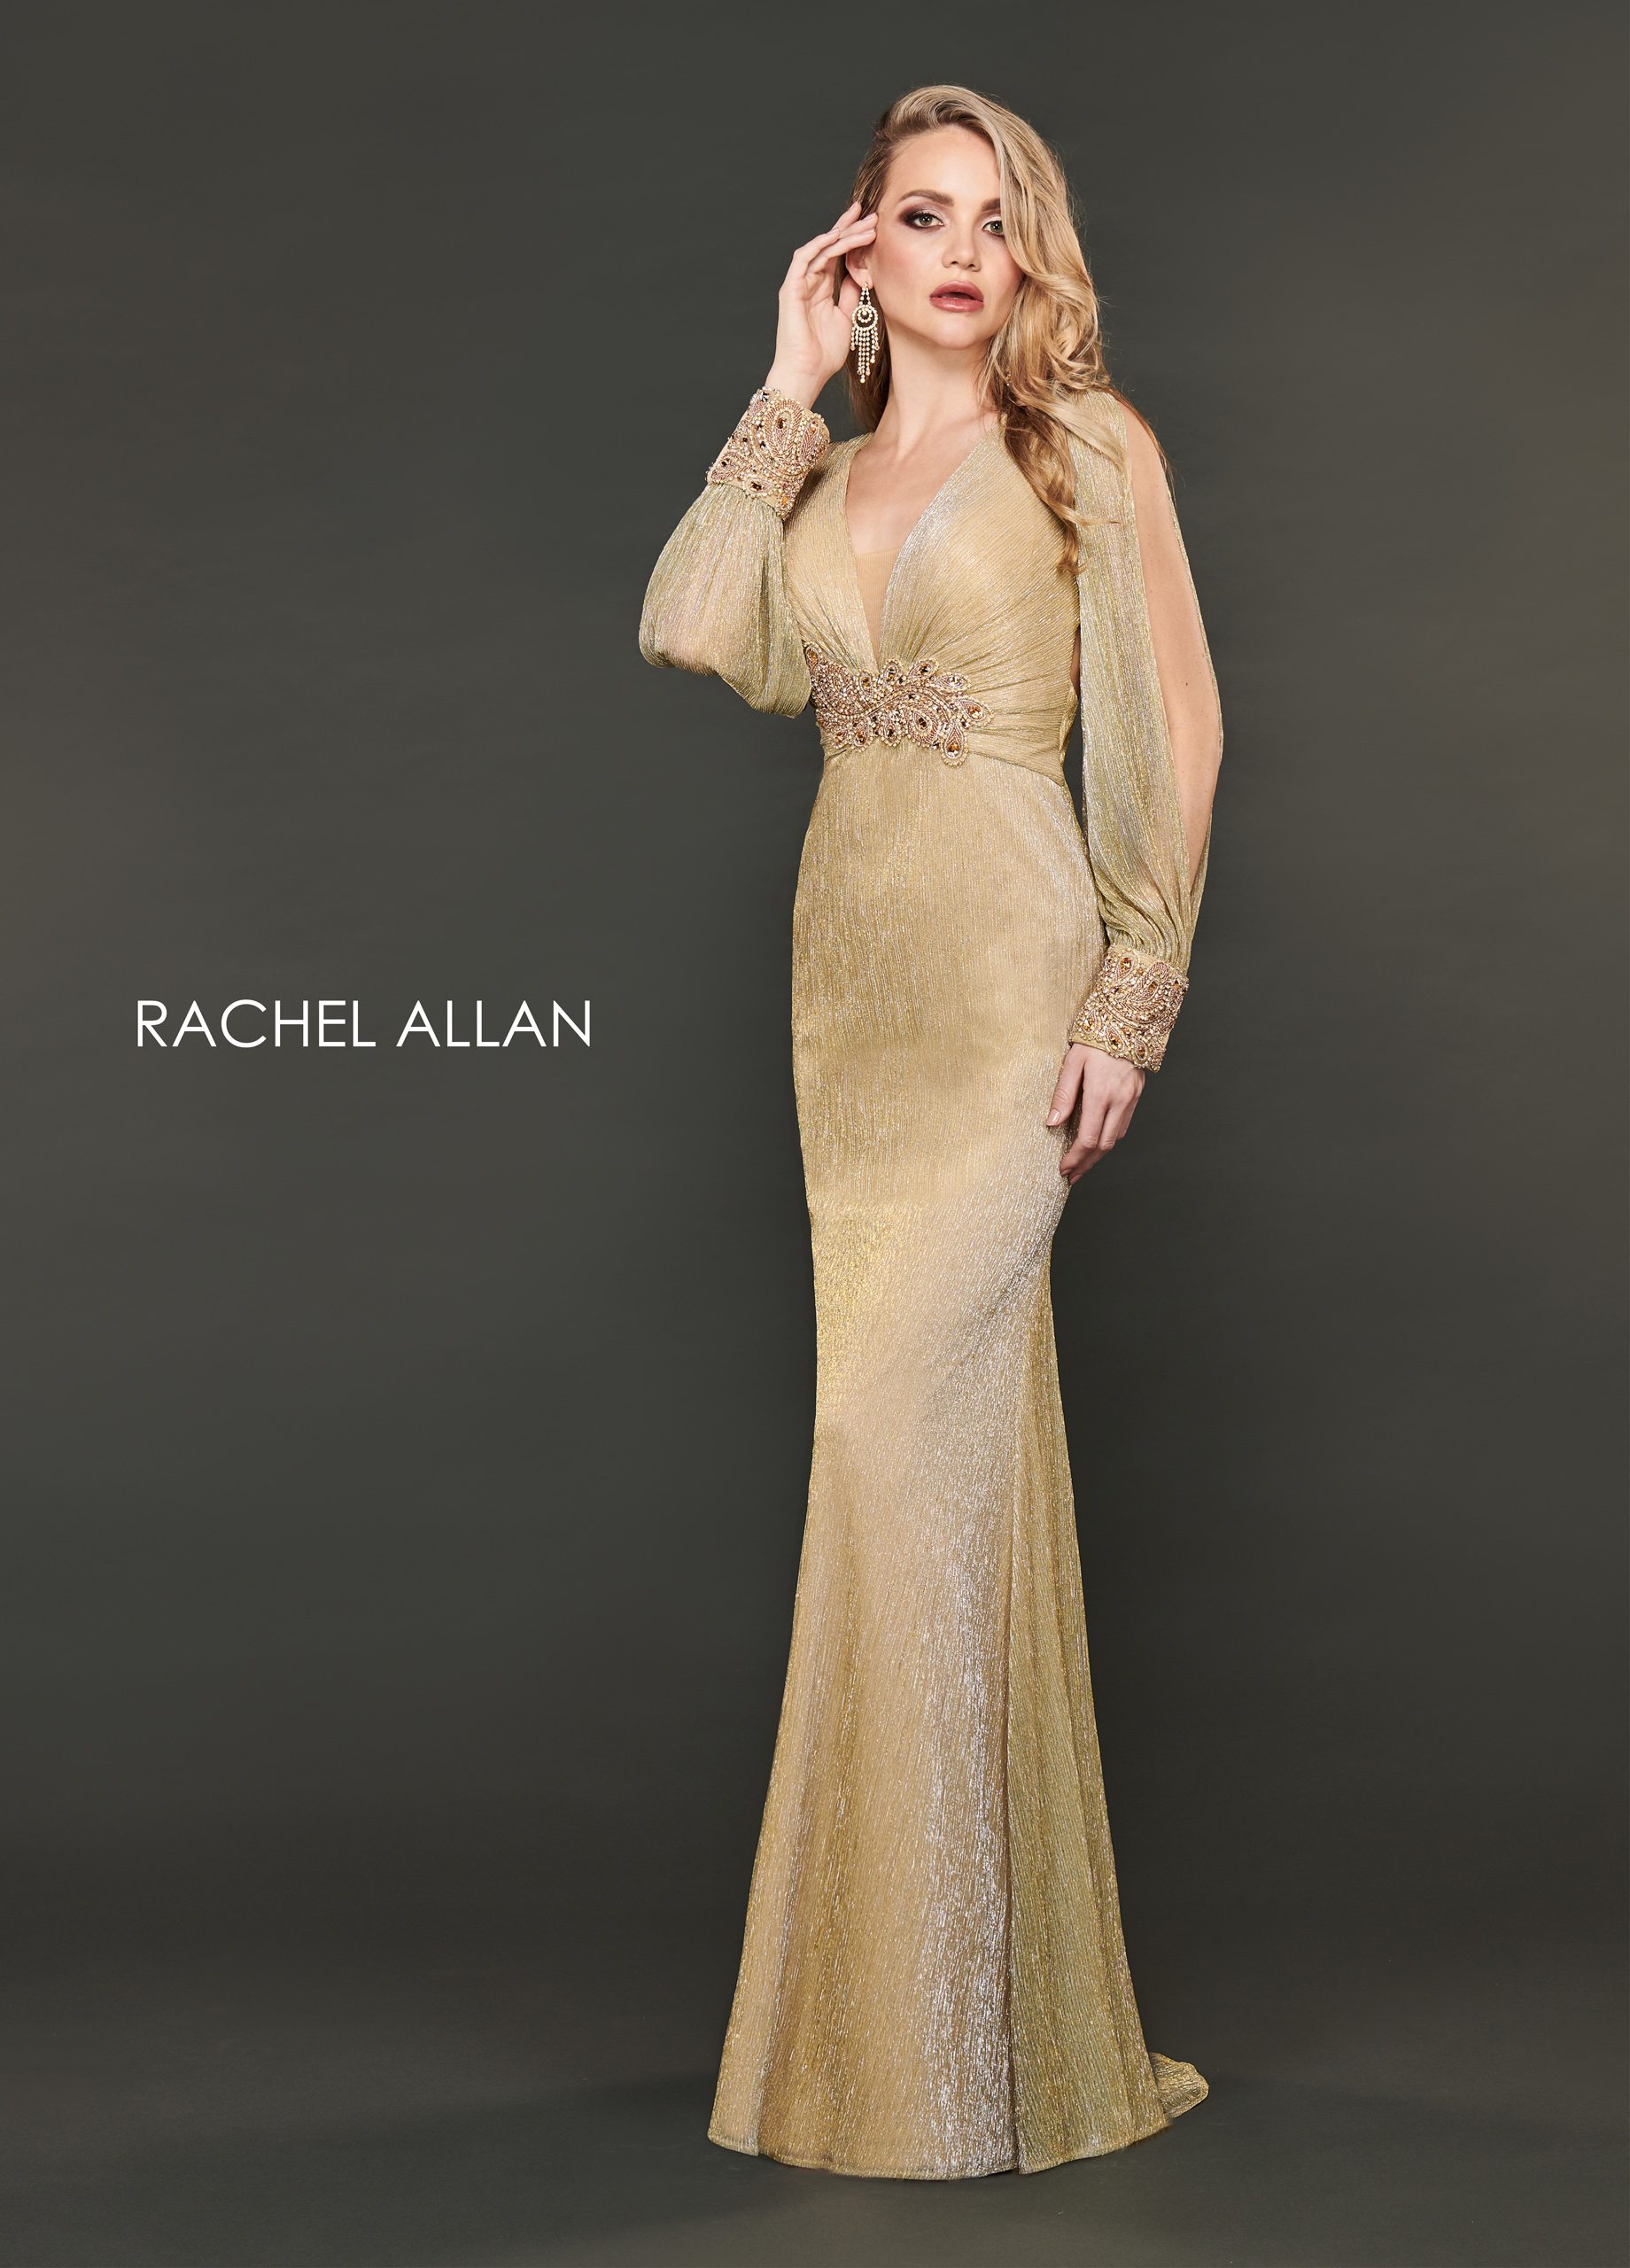 V-Neck Fitted Long Couture Dresses in Gold Color